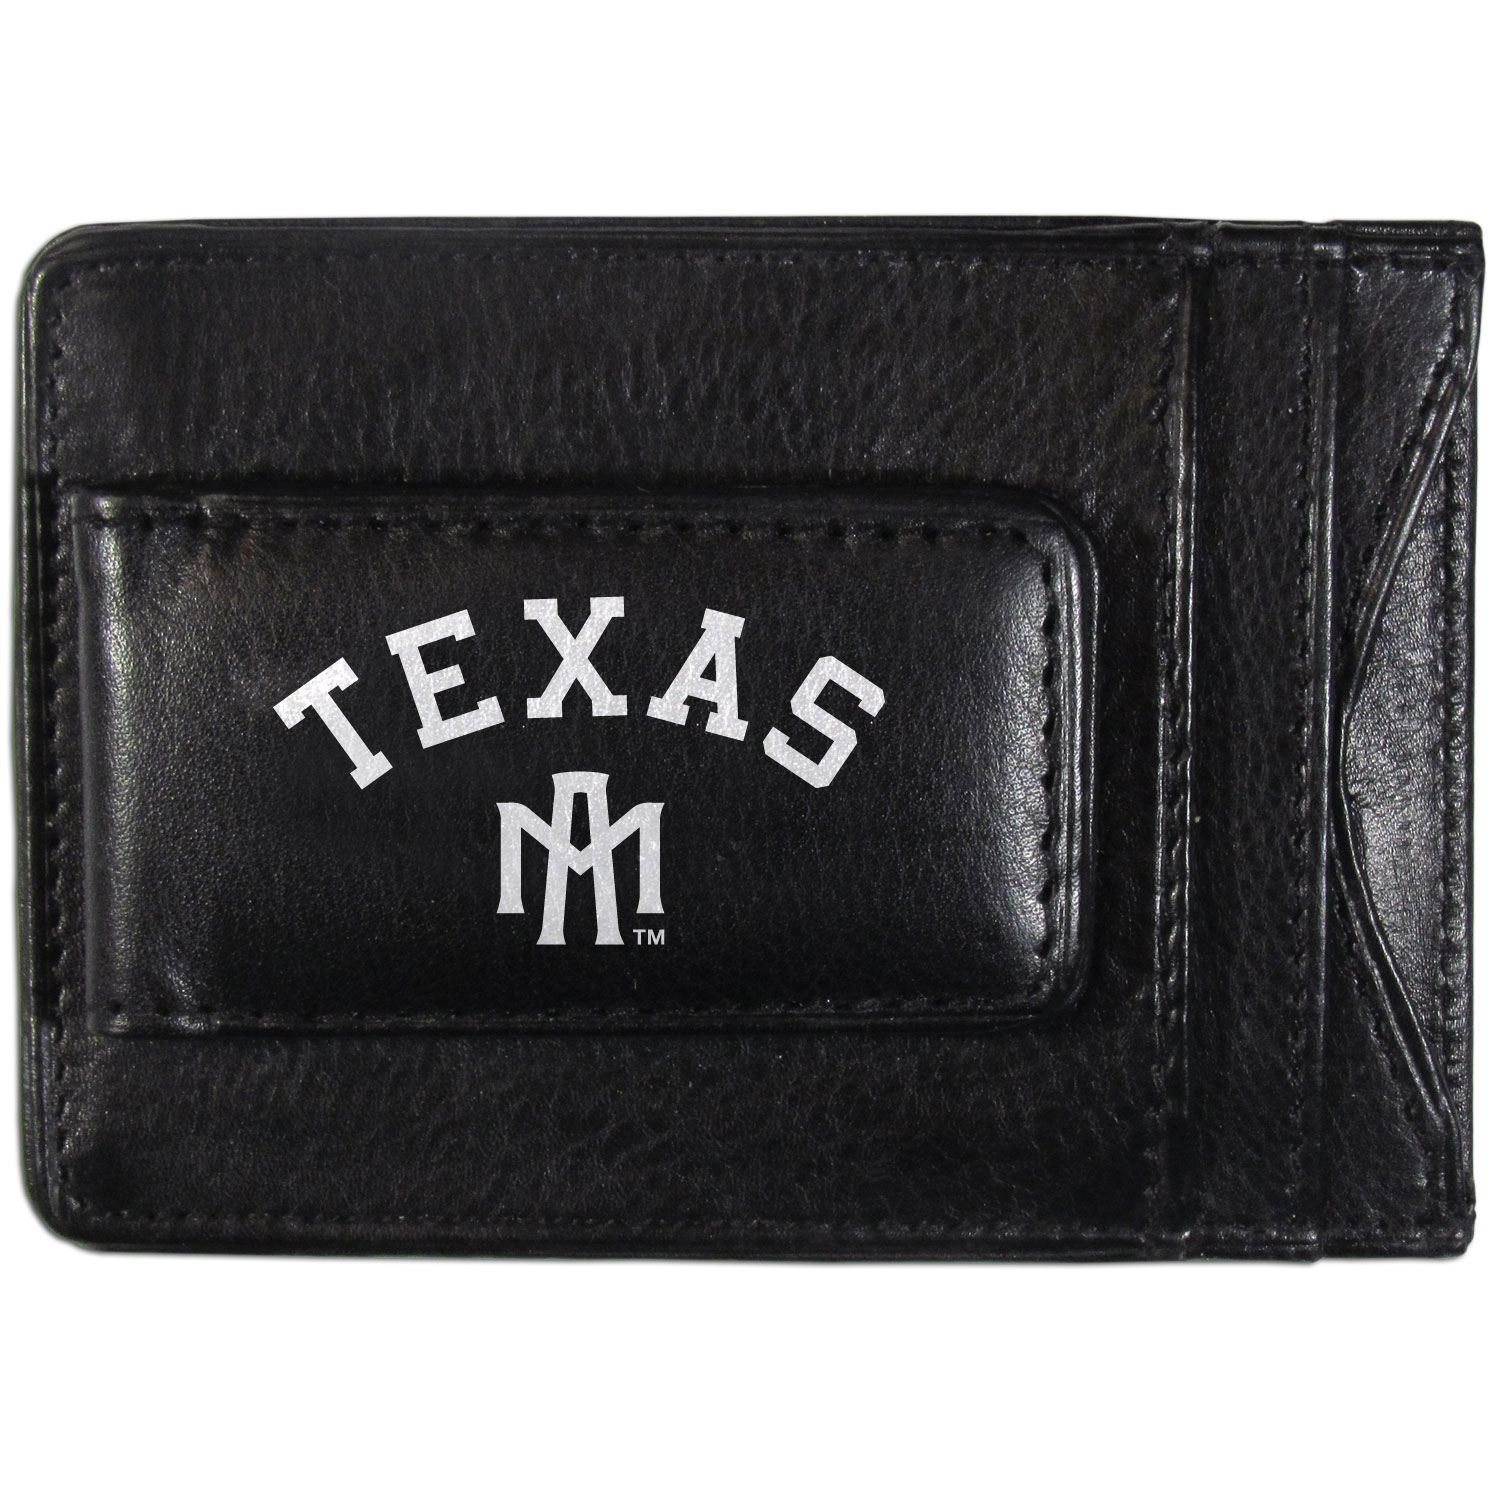 Texas A and M Aggies Logo Leather Cash and Cardholder - This super slim leather wallet lets you have all the benefits of a money clip while keeping the organization of a wallet. On one side of this front pocket wallet there is a strong, magnetic money clip to keep your cash easily accessible and the?Texas A & M Aggies team logo on the front. The versatile men's accessory is a perfect addition to your fan apparel.